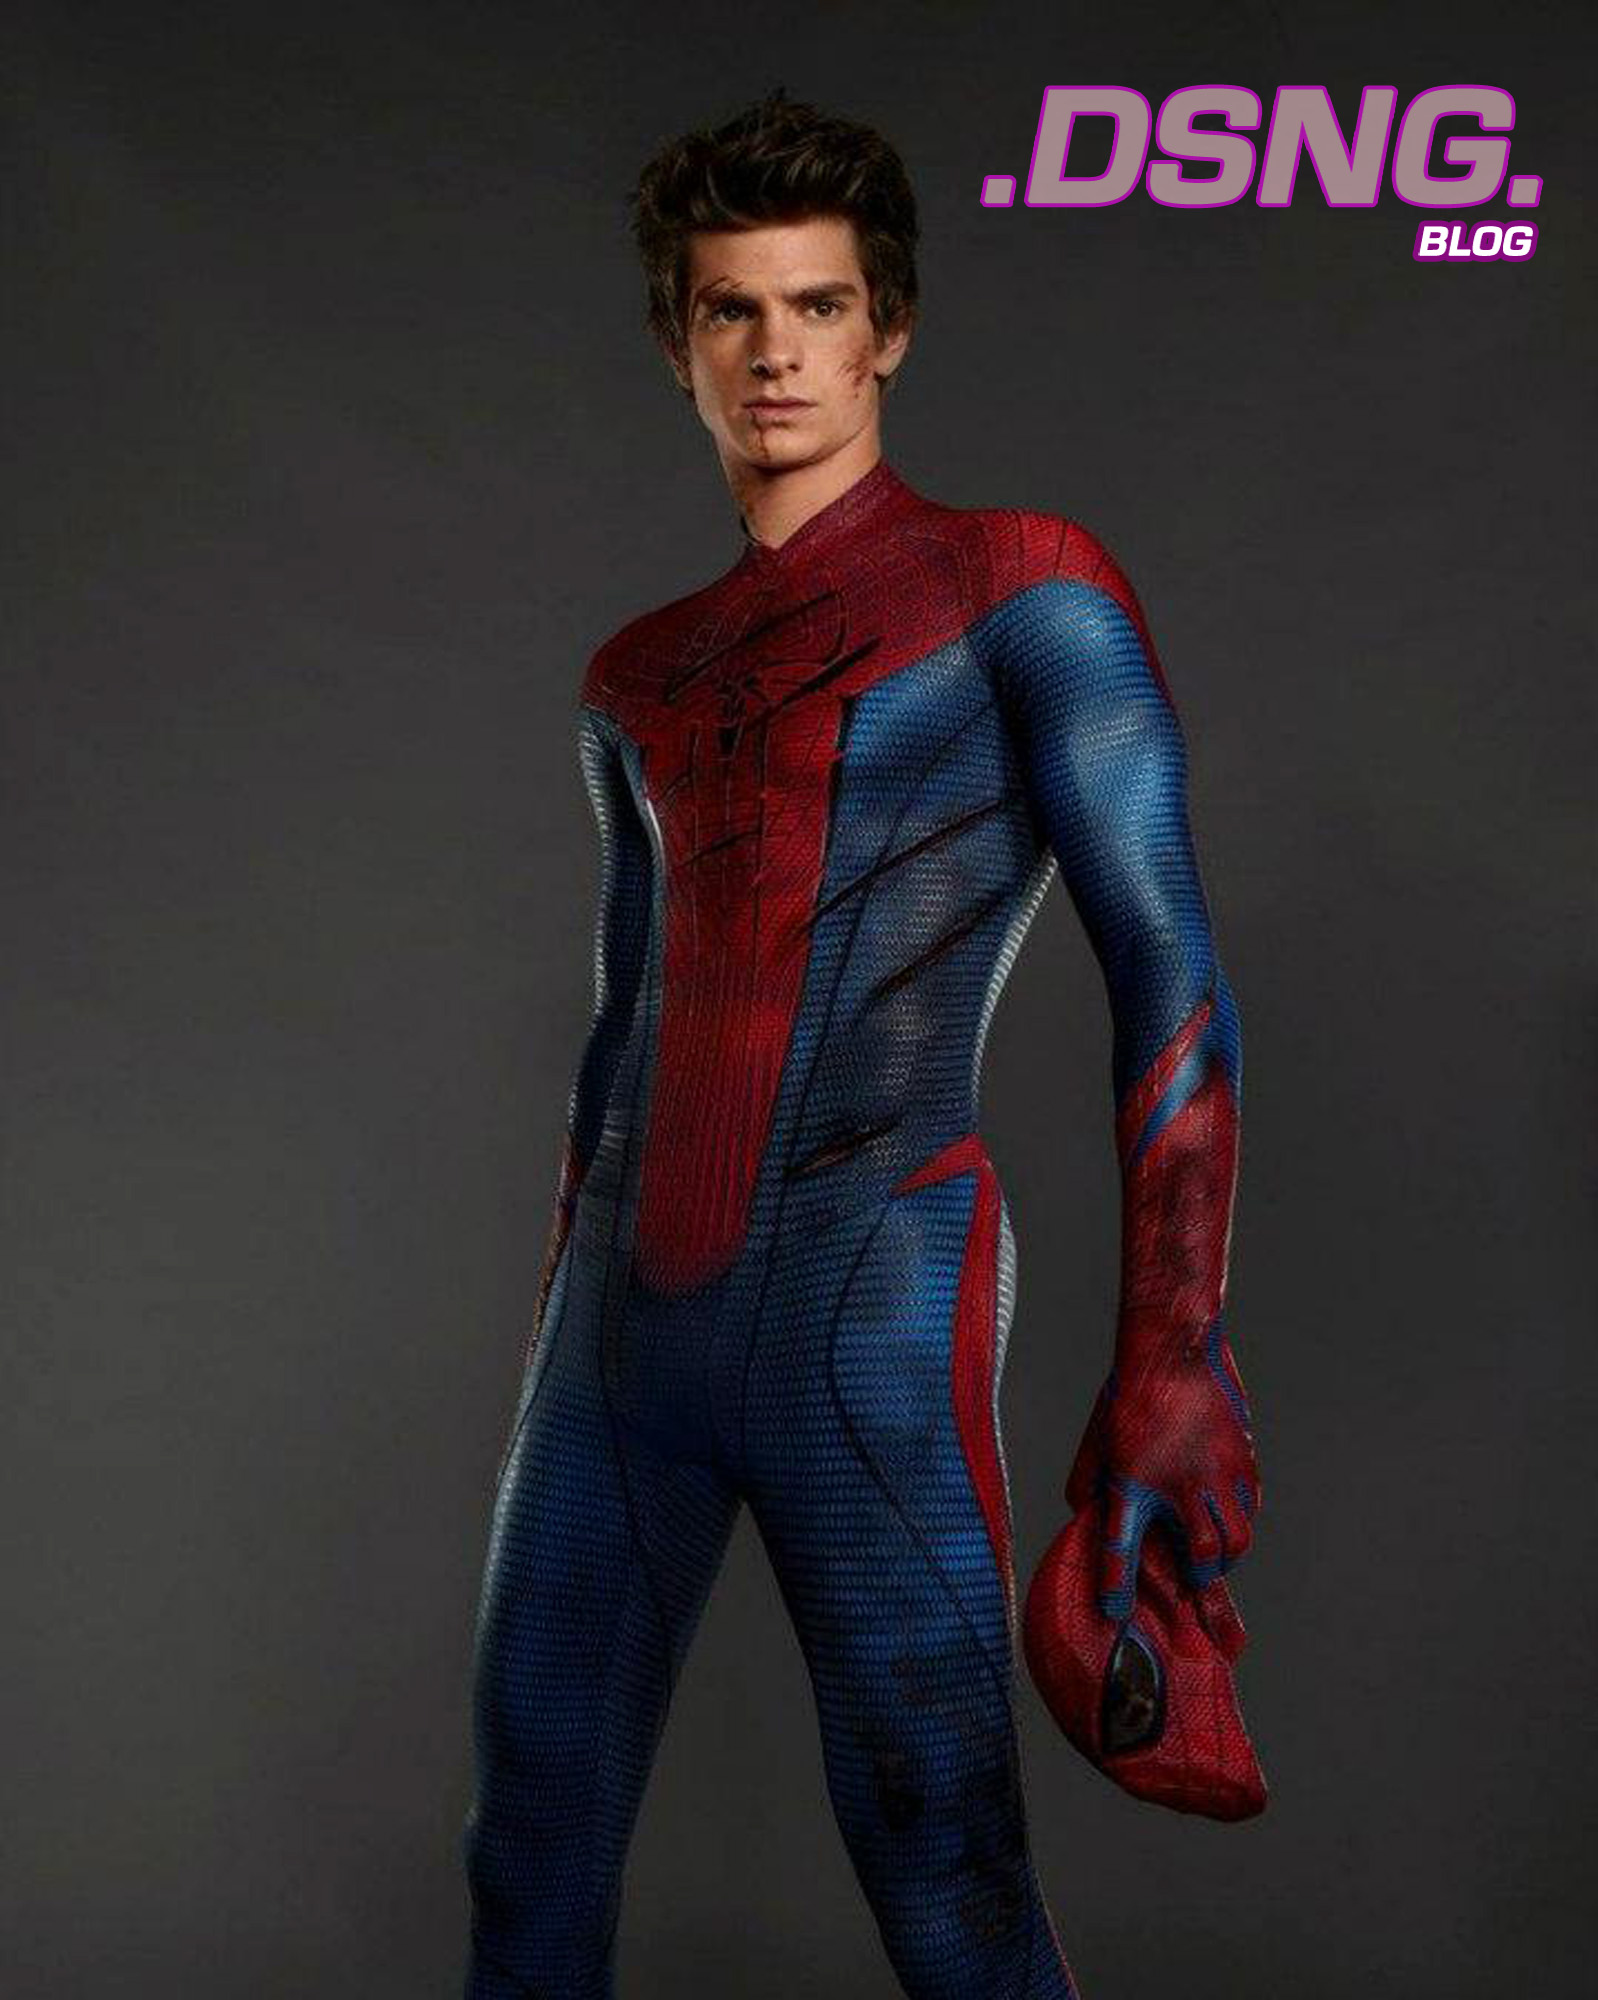 Andrew Garfield amazing spider-man spiderman 4 2012 2013 marvel official movie poster unmasked